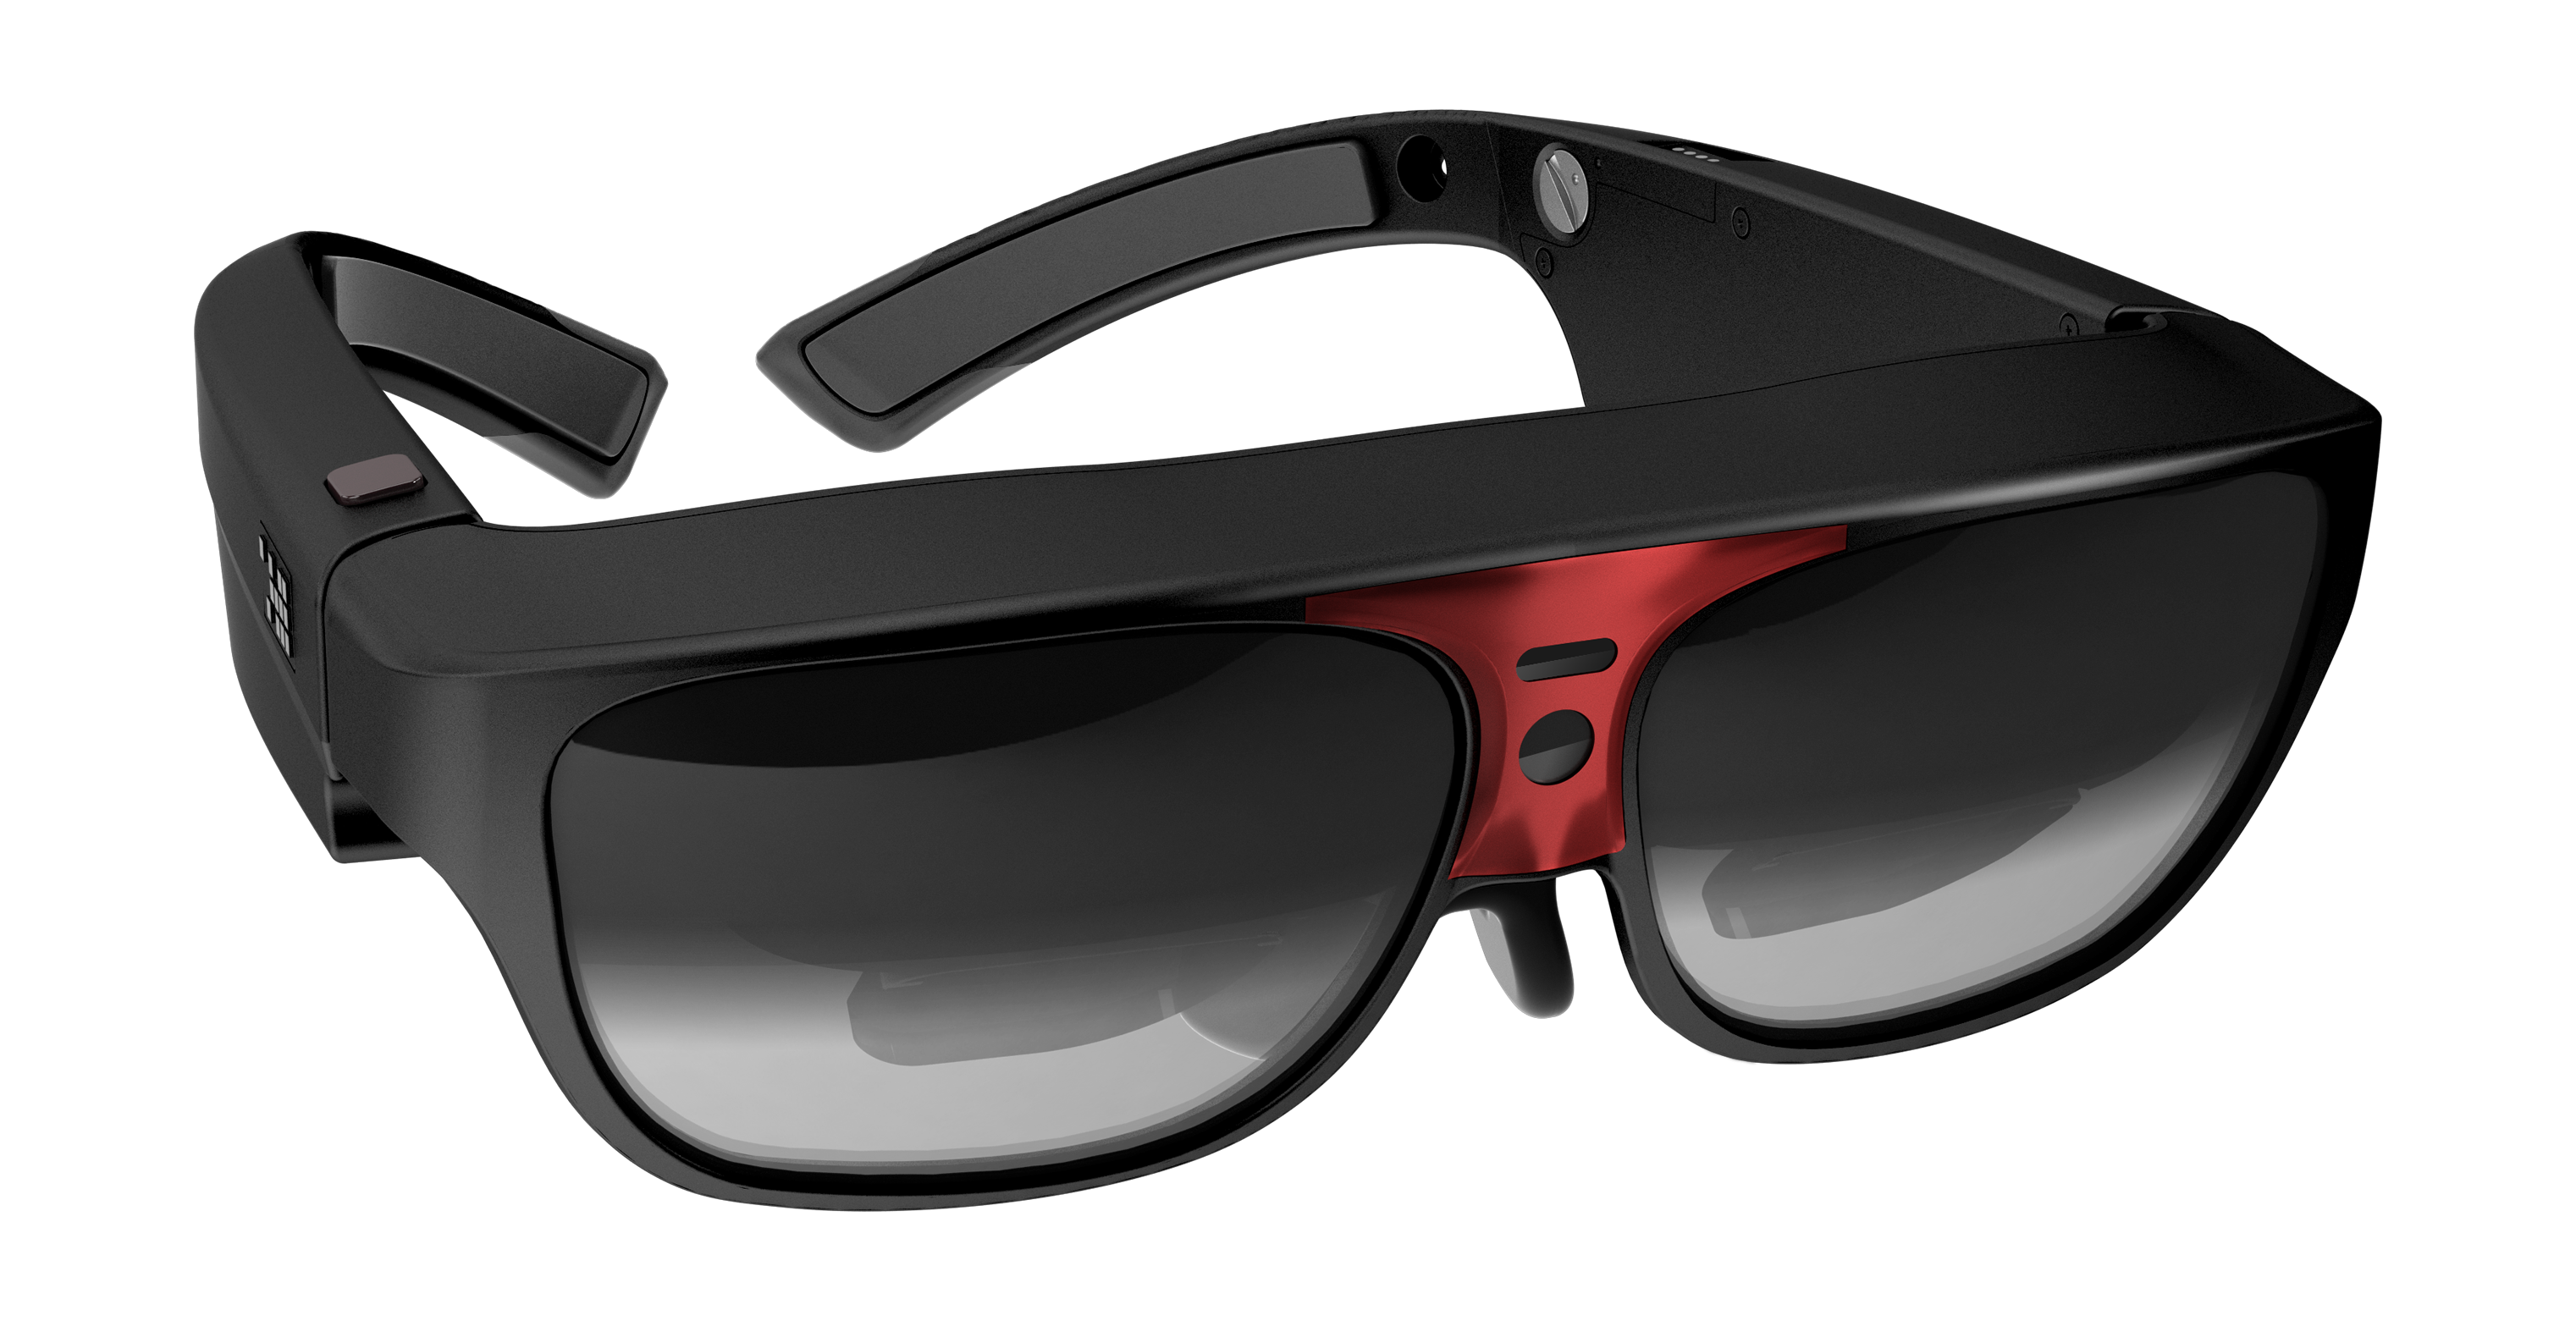 db34cfa45203 ODG - System - Products - R-7 Smart Glasses